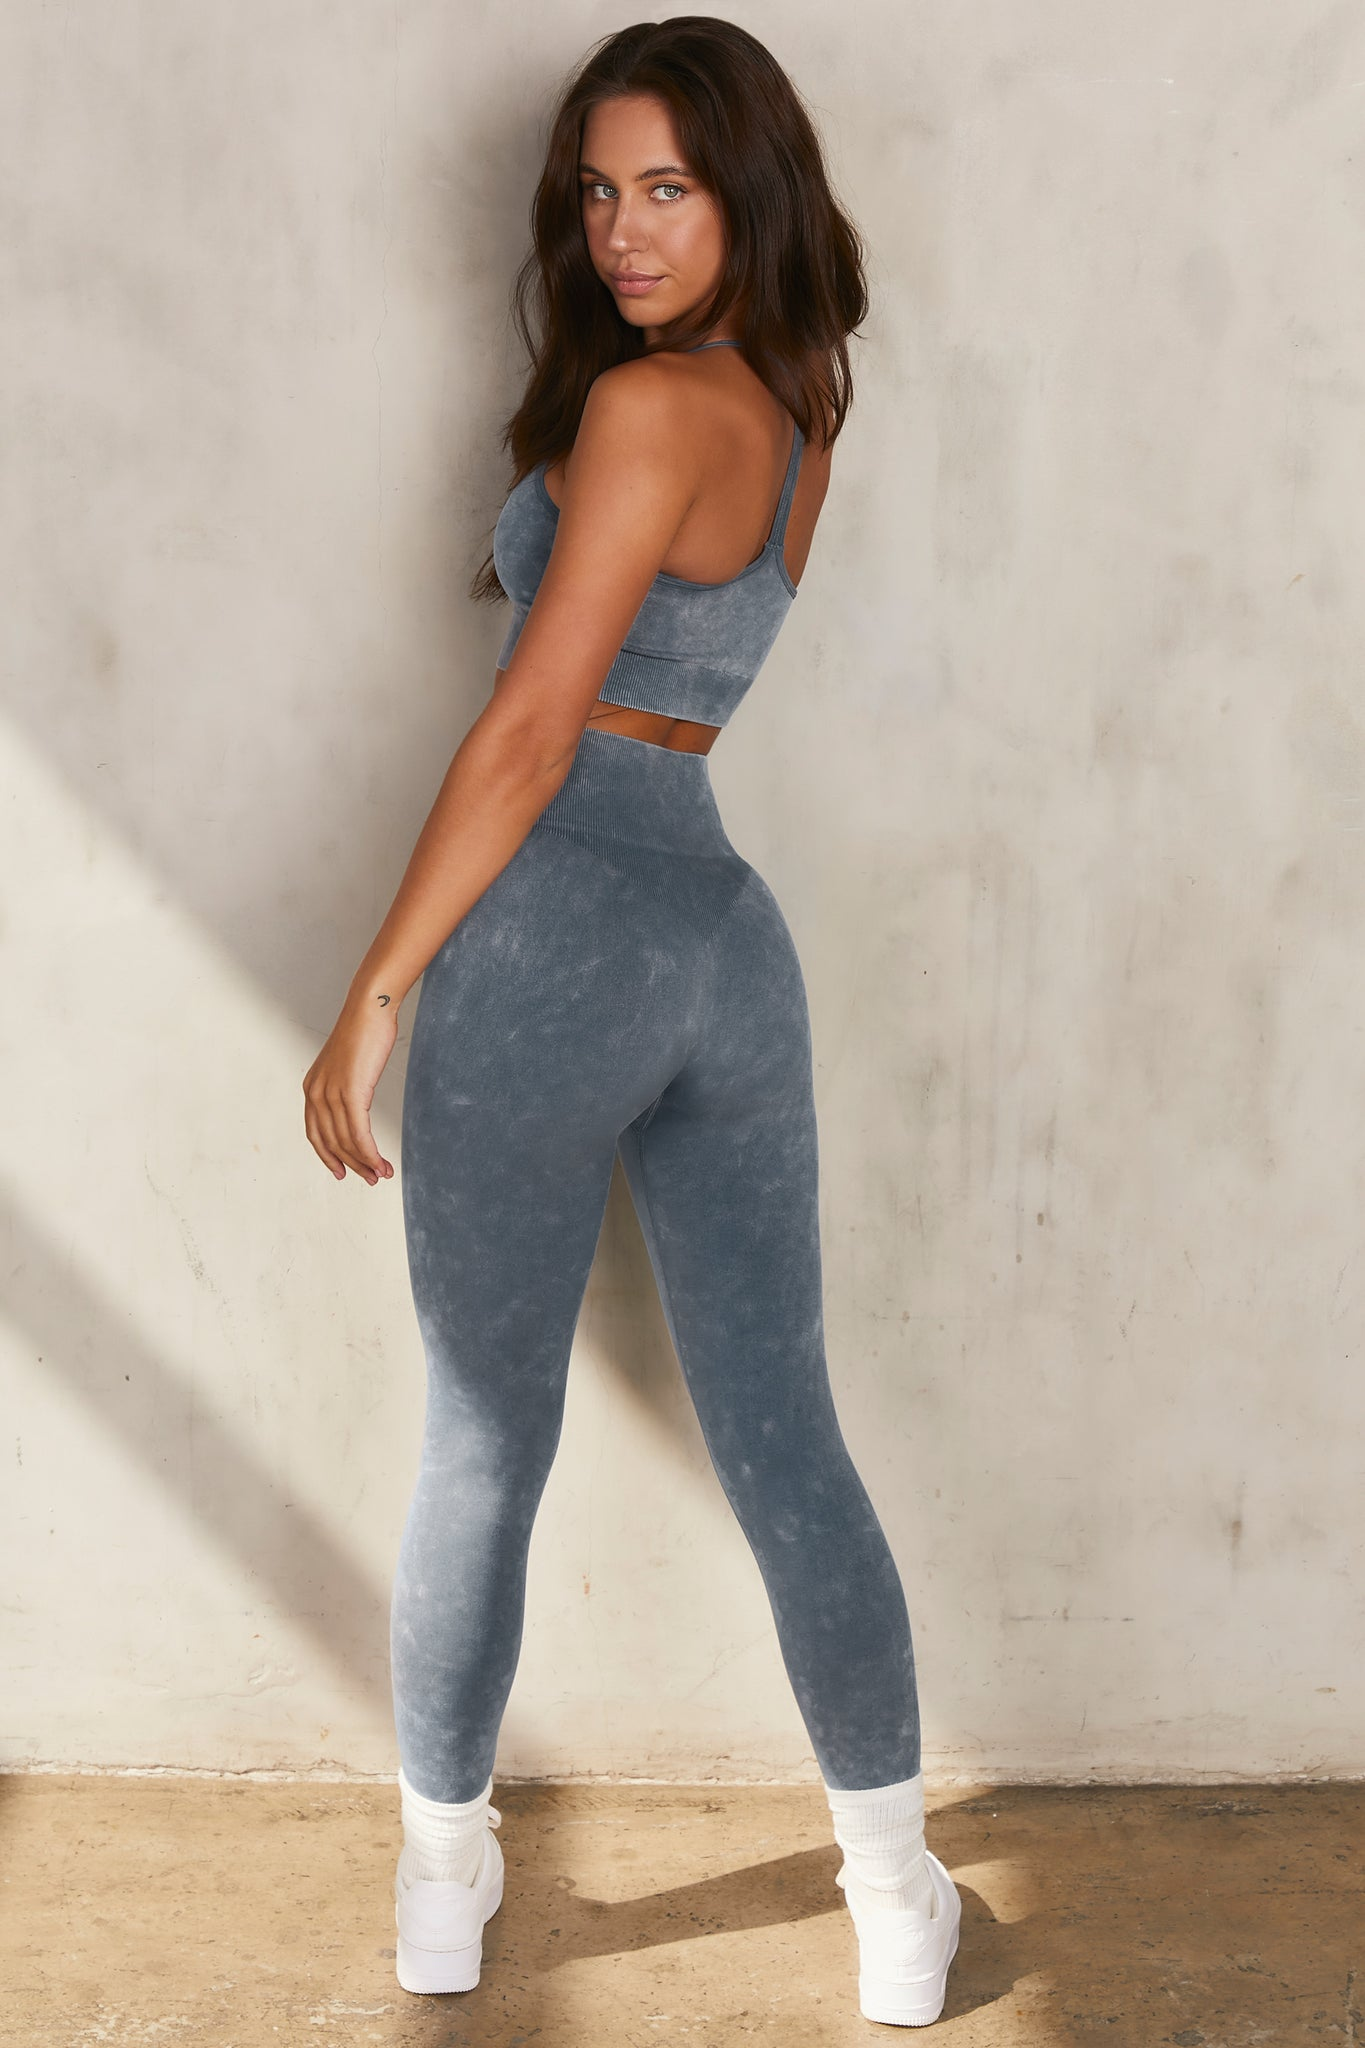 Reflex Petite - Leggings in Charcoal